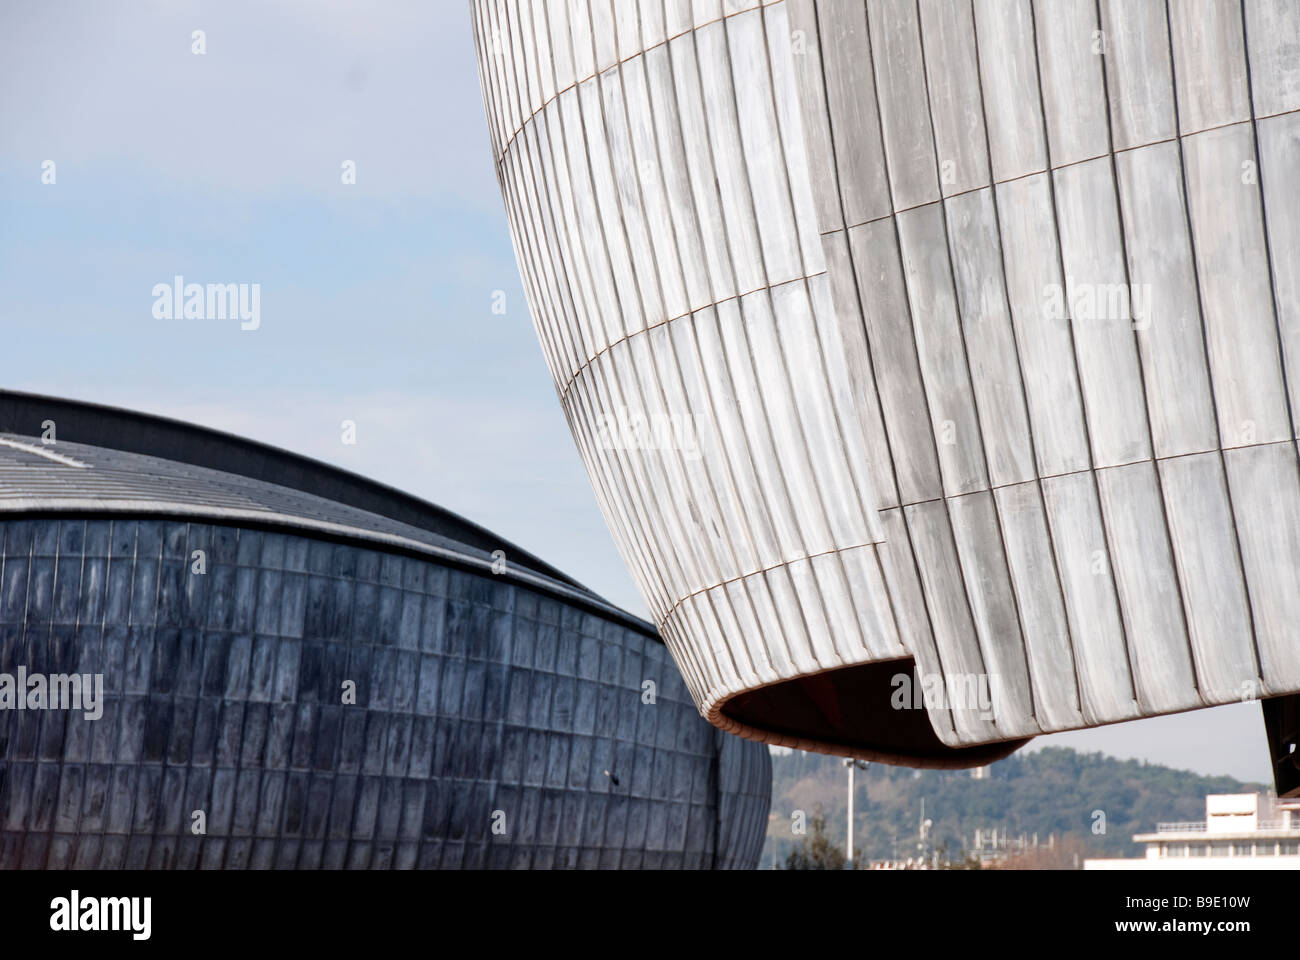 Detail of the lead roof of The Auditorium, concert hall in the Parco della Musica designed by the architect Renzo Piano Stock Photo